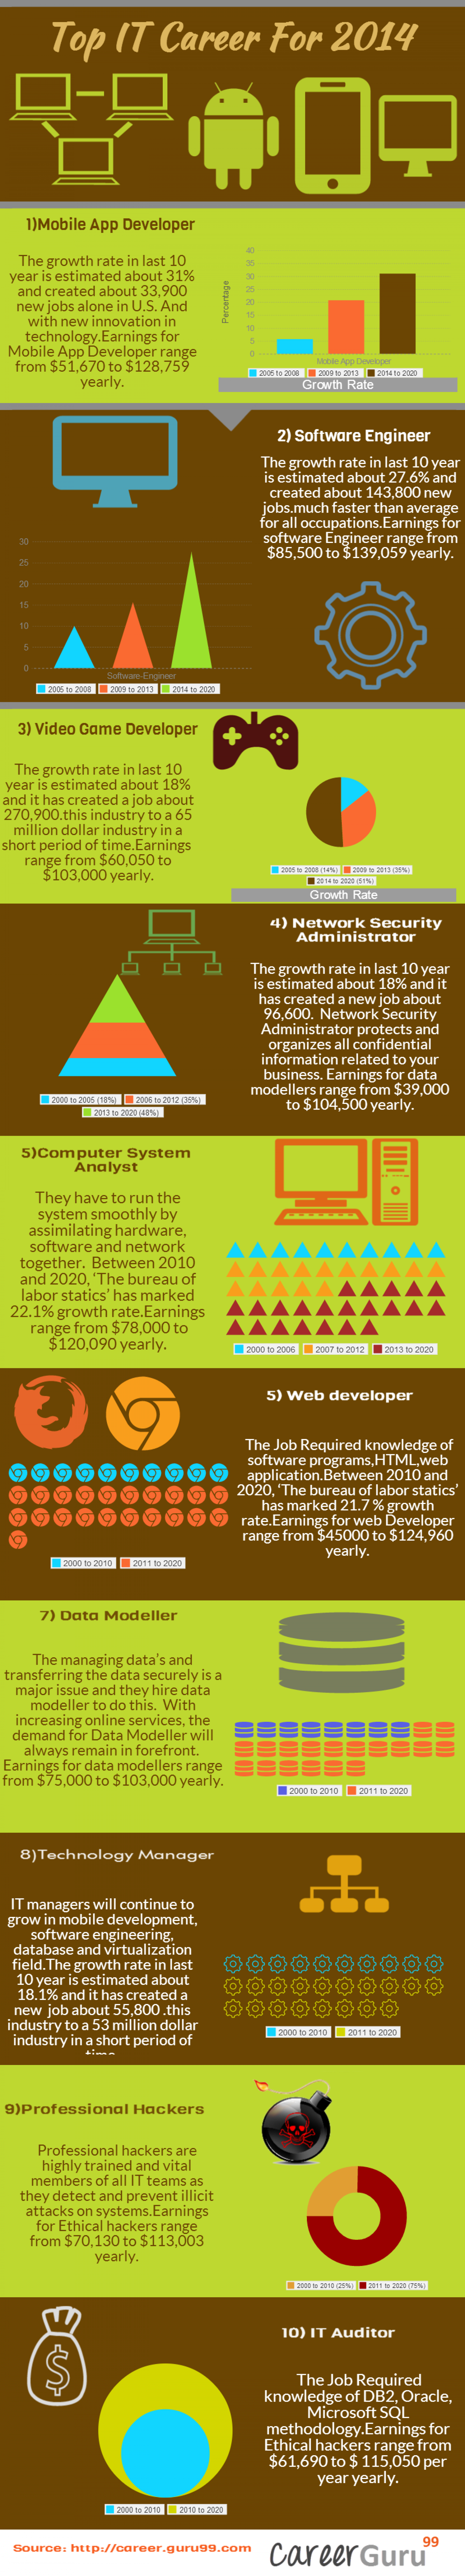 Top IT careers for 2014 Infographic